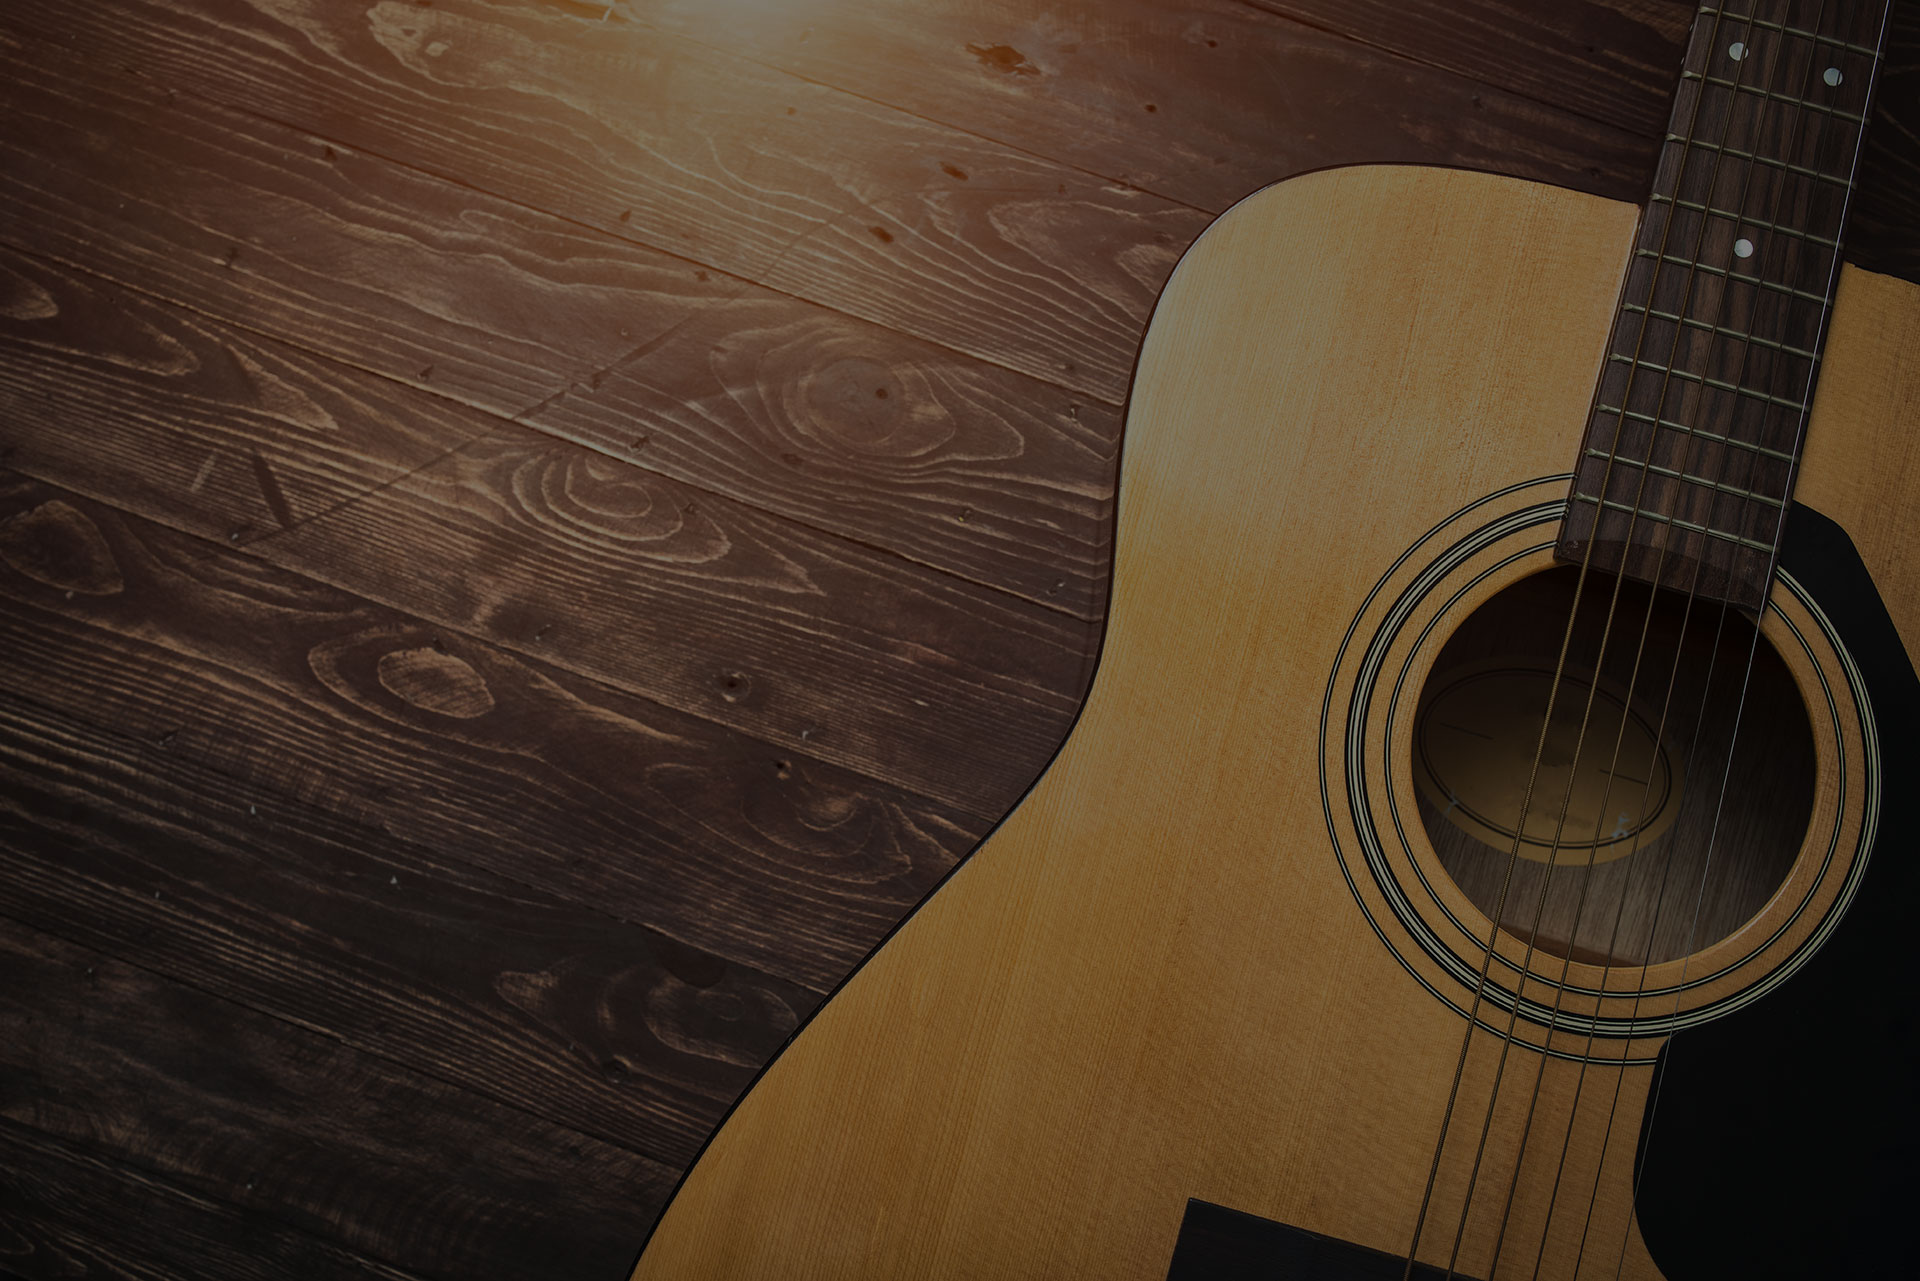 Acoustic guitar resting against a wooden background with copy space